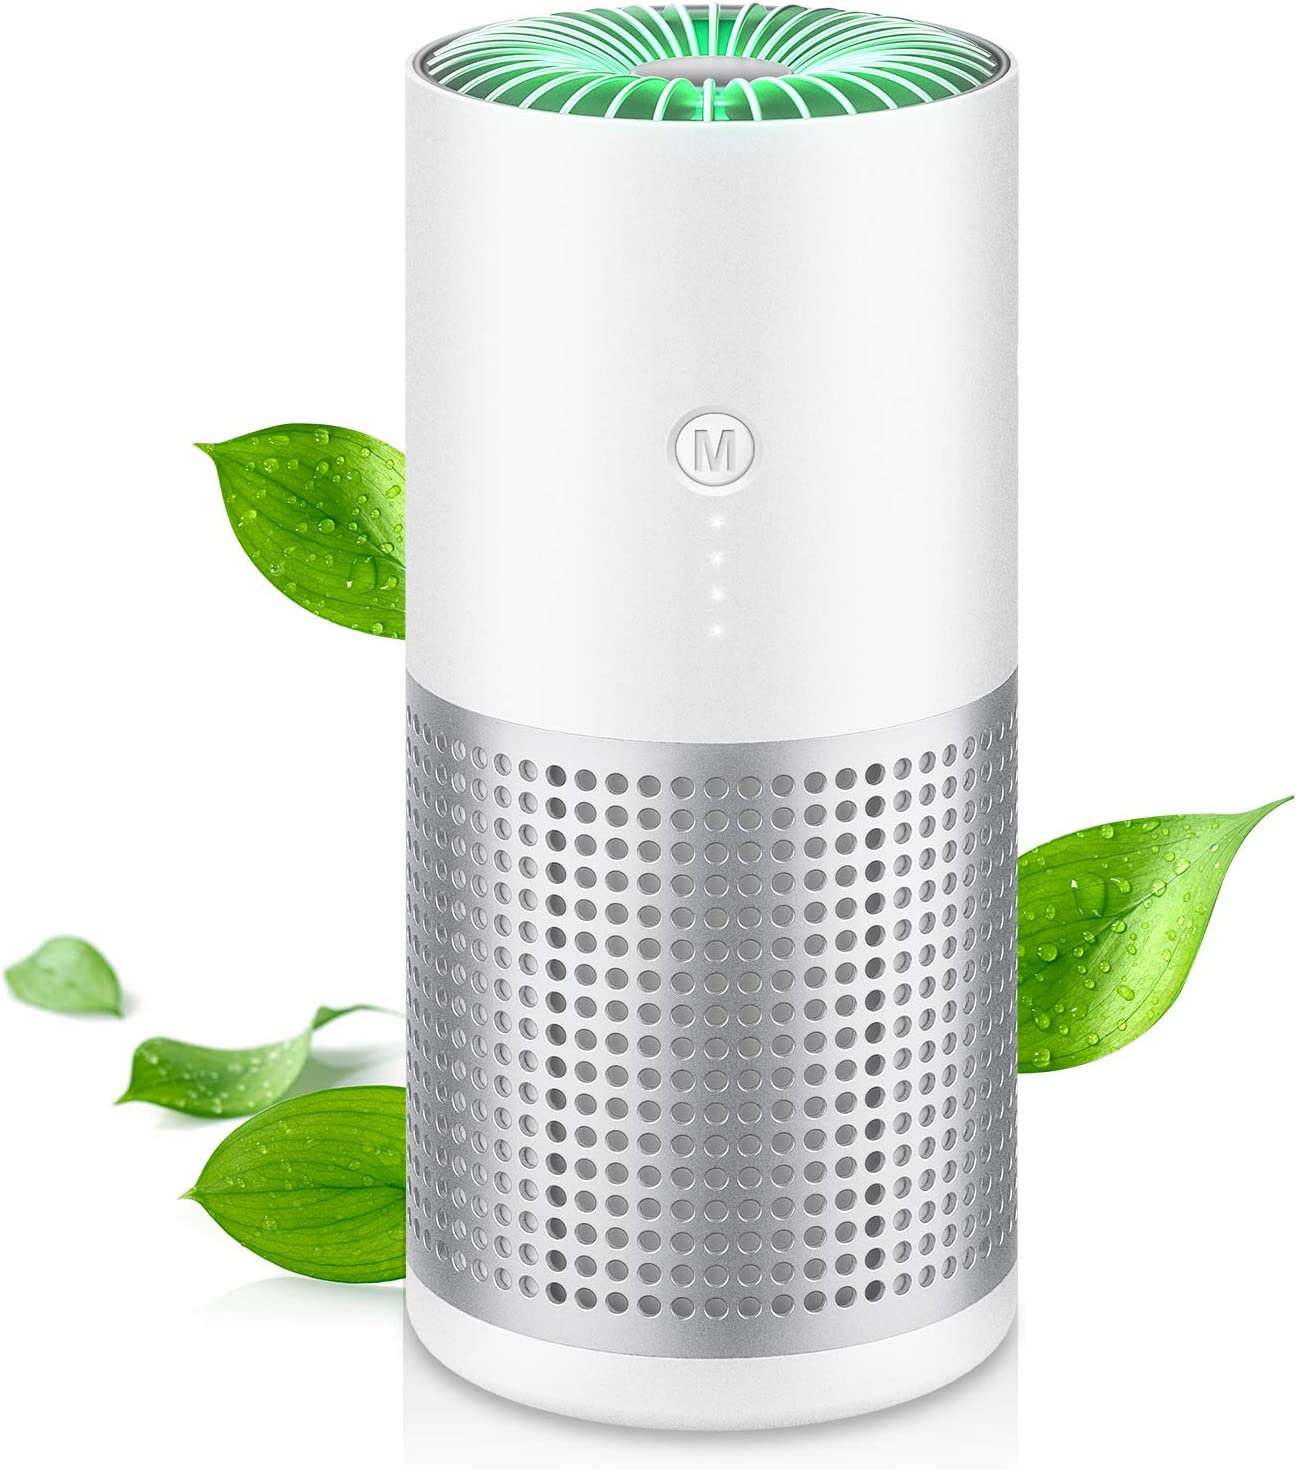 MZTDYTL Air Purifiers for Home Car Allergies Pets Hair Smoke Dust Airborne Contaminants Odors-Desktop Air Cleaner with True HEPA Filter with HEPASilent Technology for Bedroom Office Car